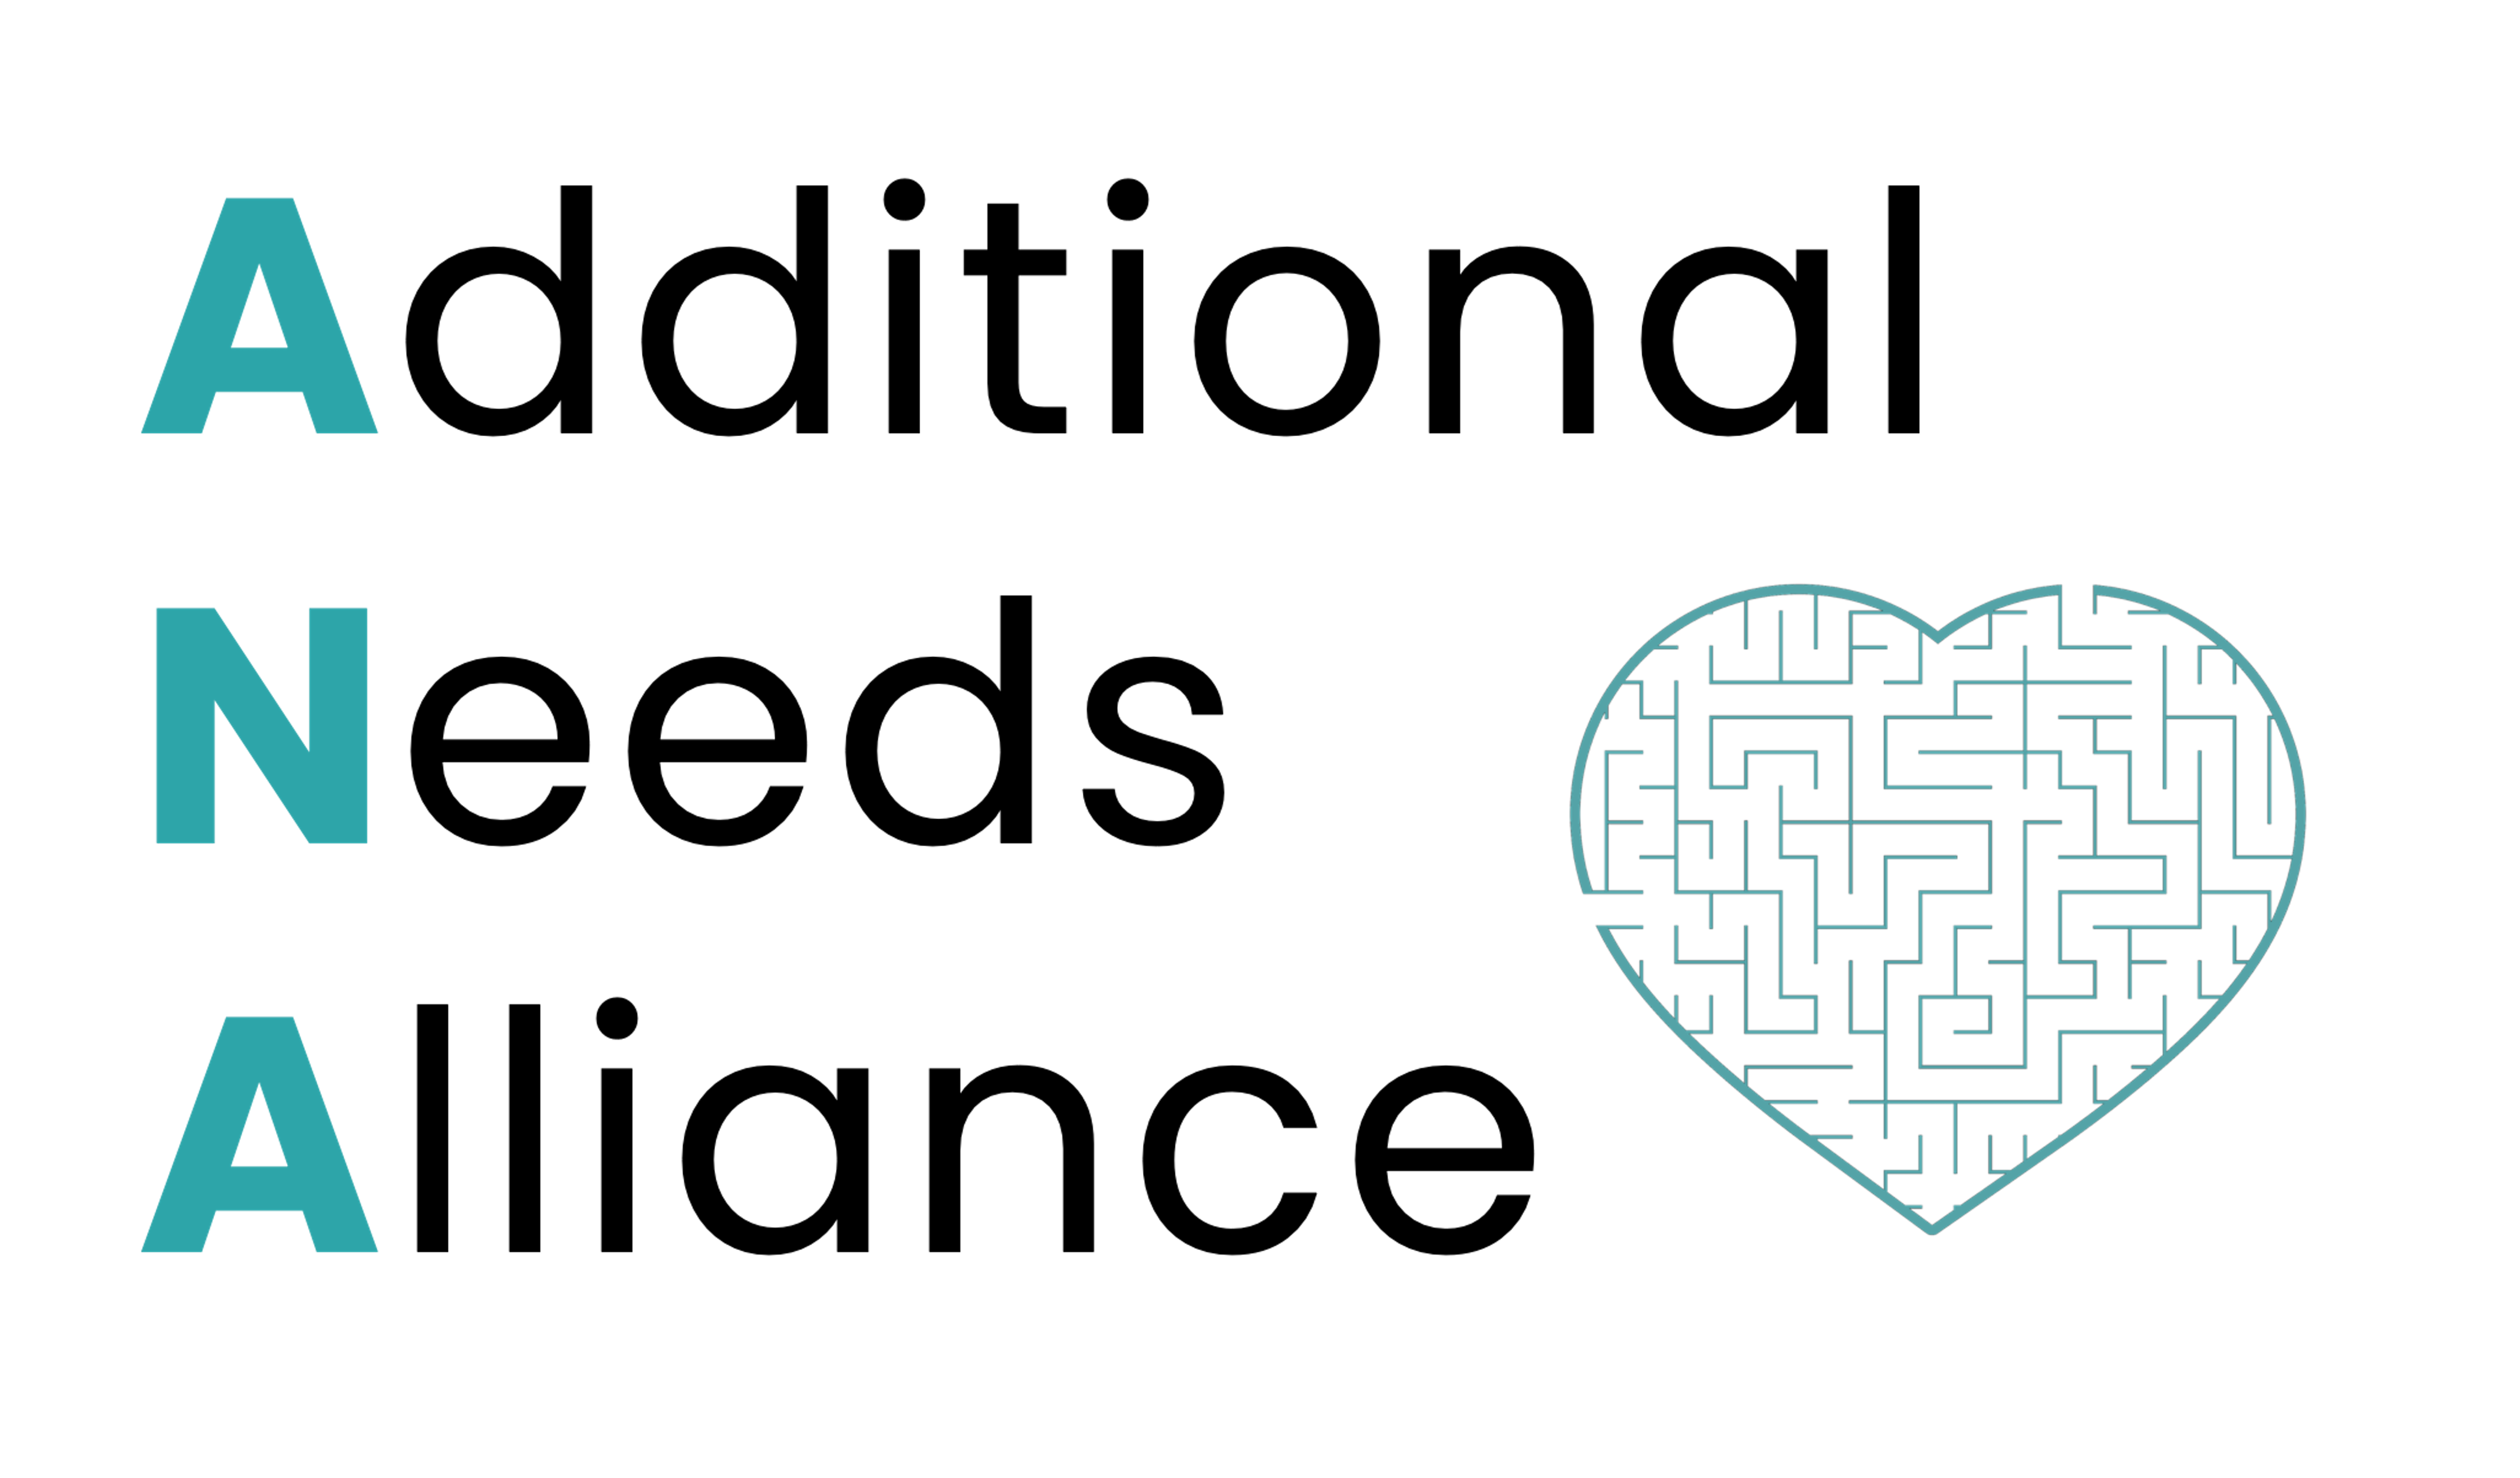 Additional Needs Alliance Logo. Nest to the name is a heart with what looks like a maze inside it